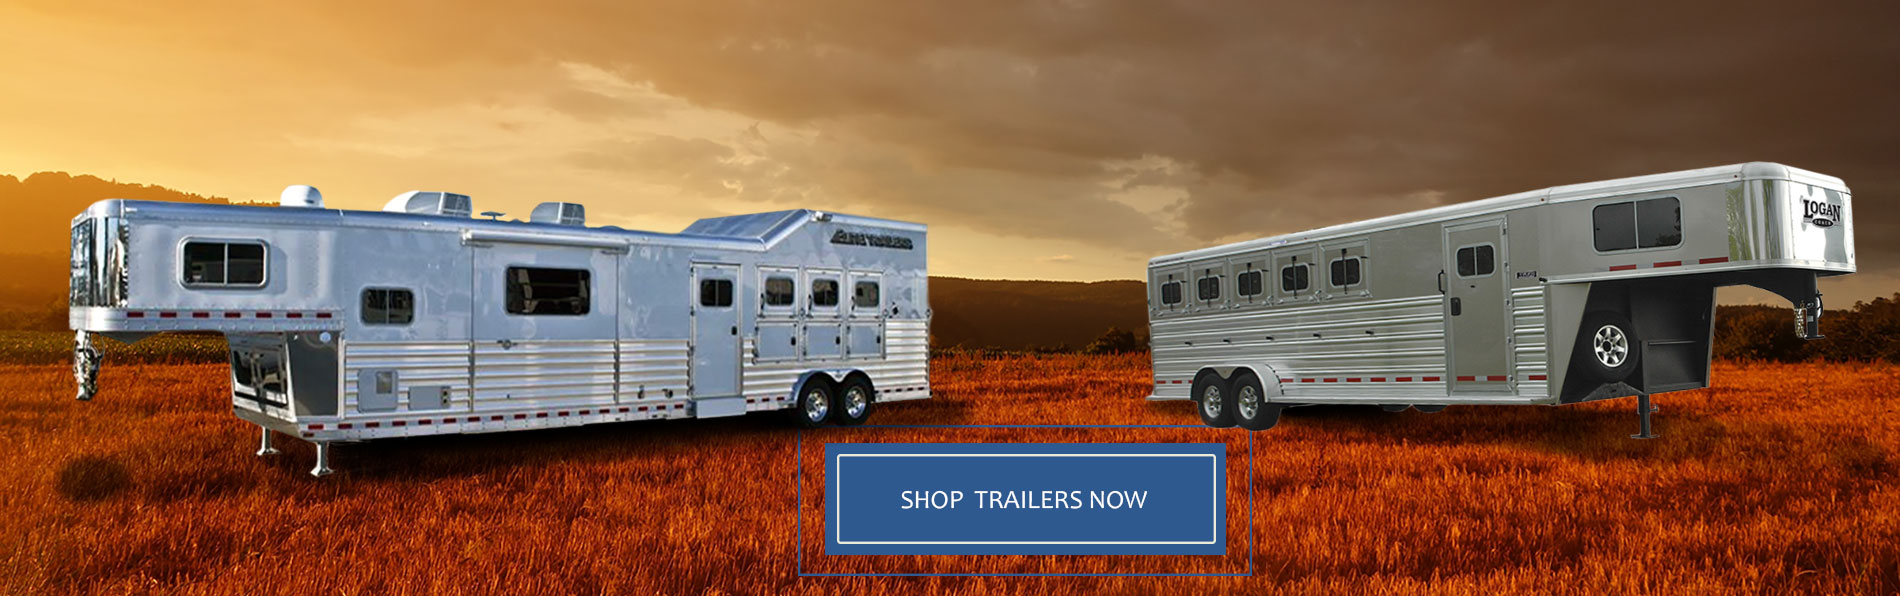 Search Elite and Logan Coach trailers for sale